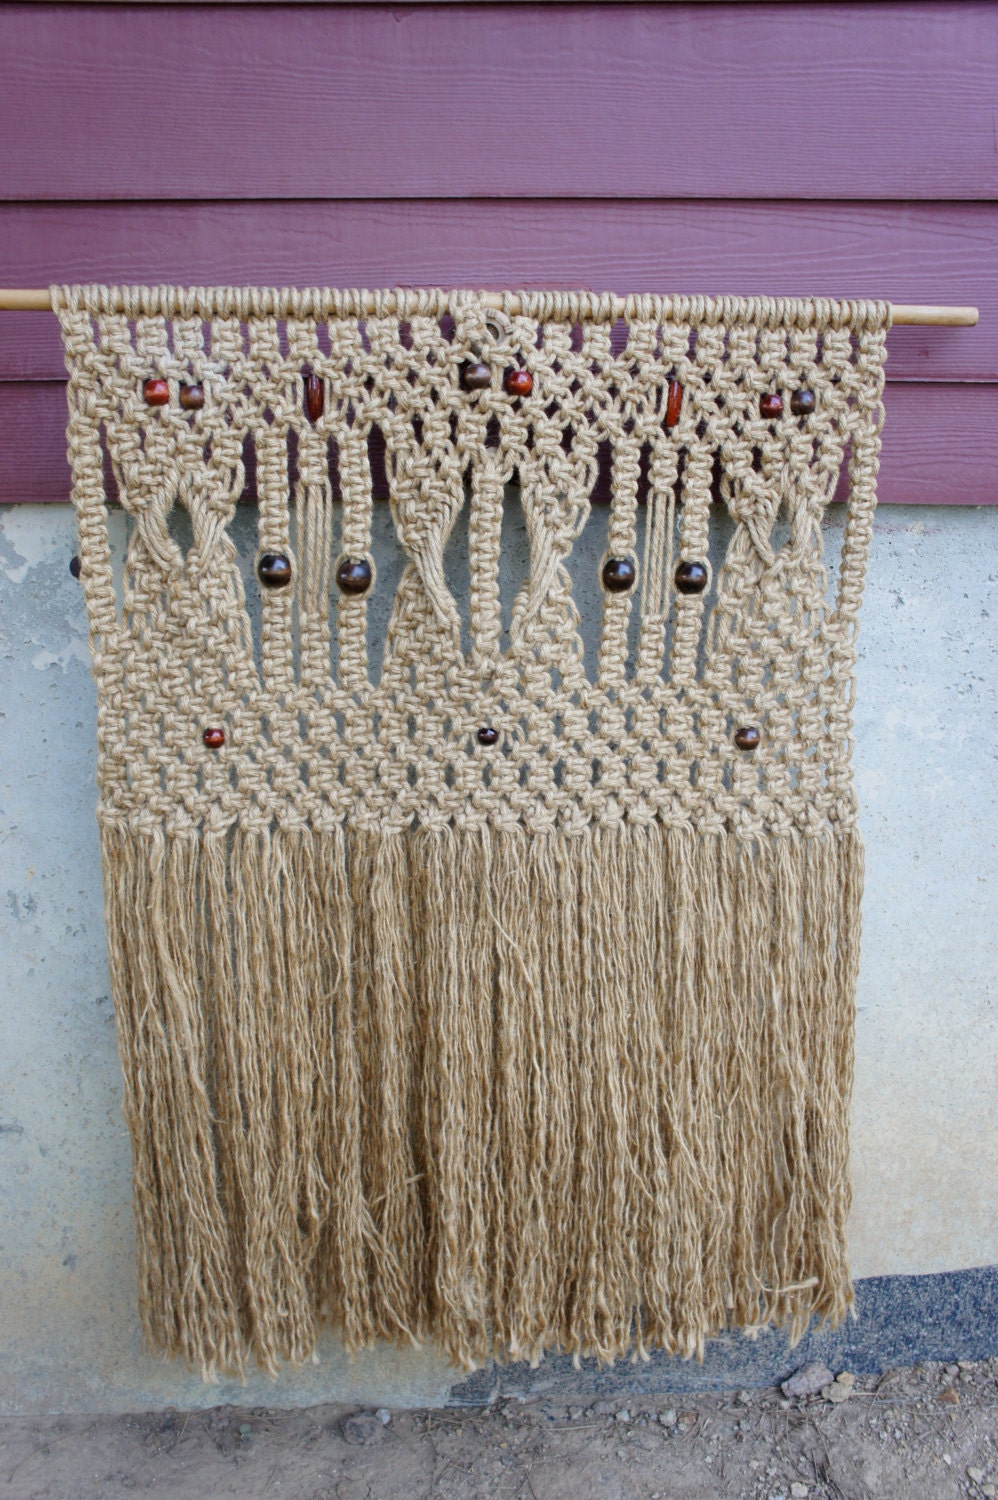 Large Macrame Wall Hanging Curtain Wooden Beads Hippie Organic